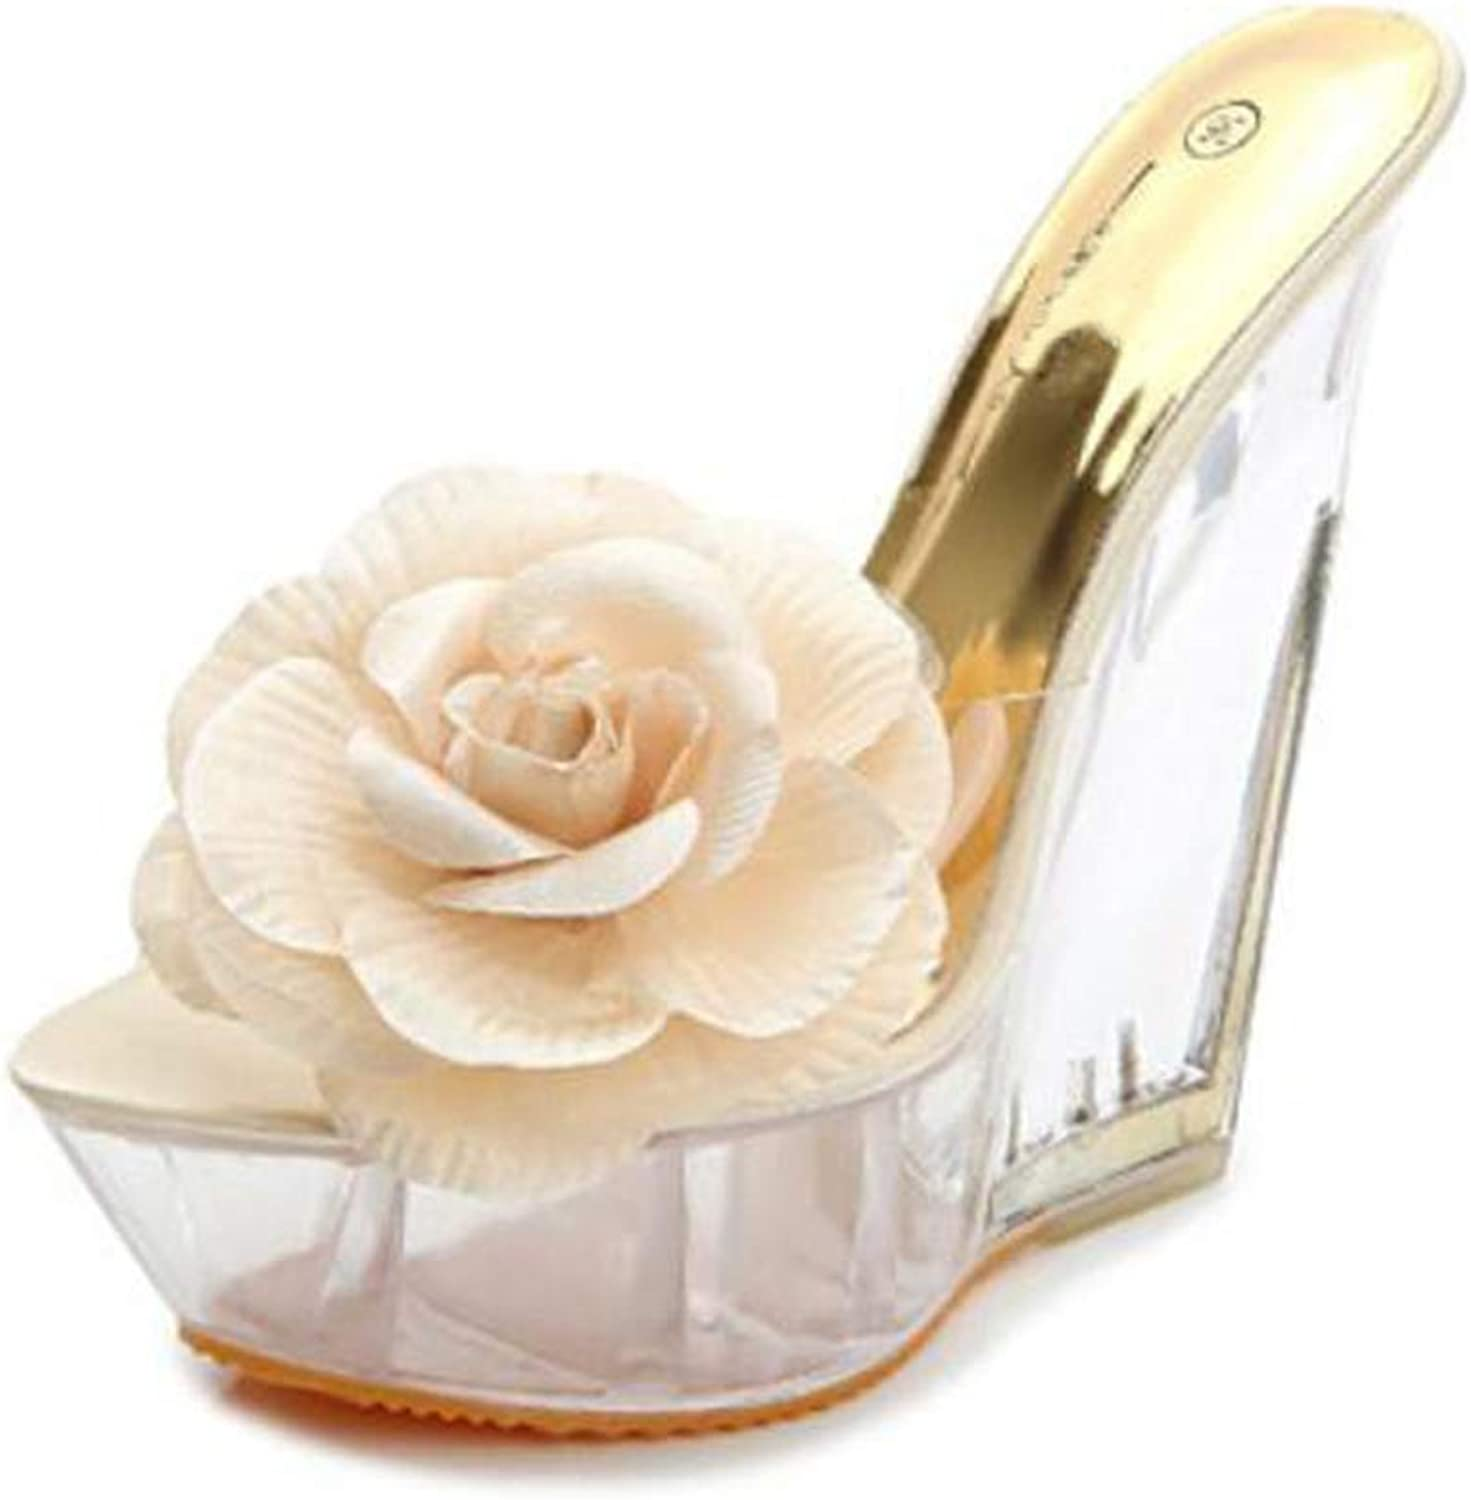 T-JULY Women shoes Transparent Sandals High Heels Slippers Shaped Resin Flowers Ladies Platform Wedges shoes